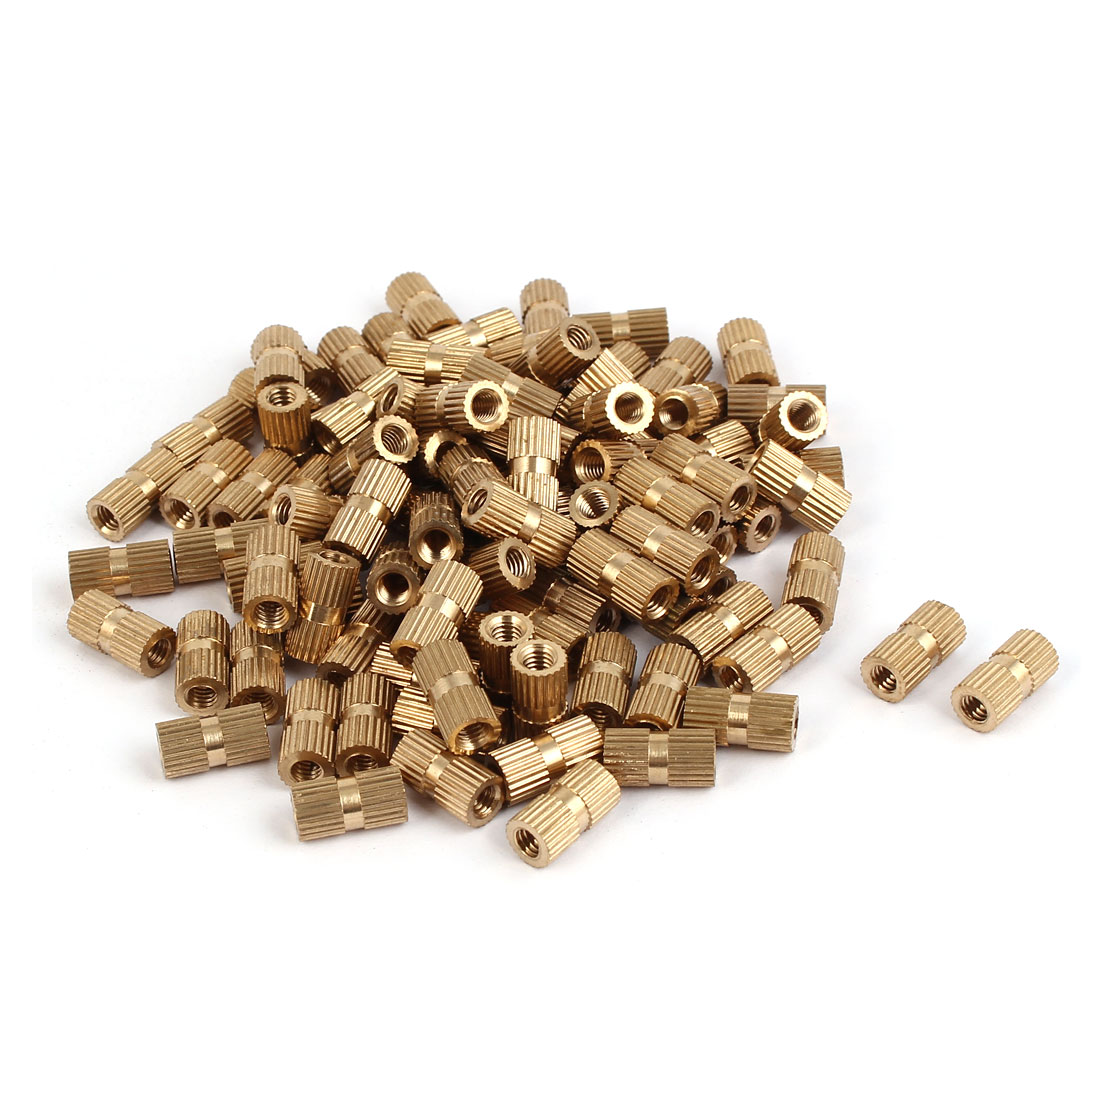 M4 x 12mm Brass Cylinder Knurled Threaded Round Insert Embedded Nuts 100PCS